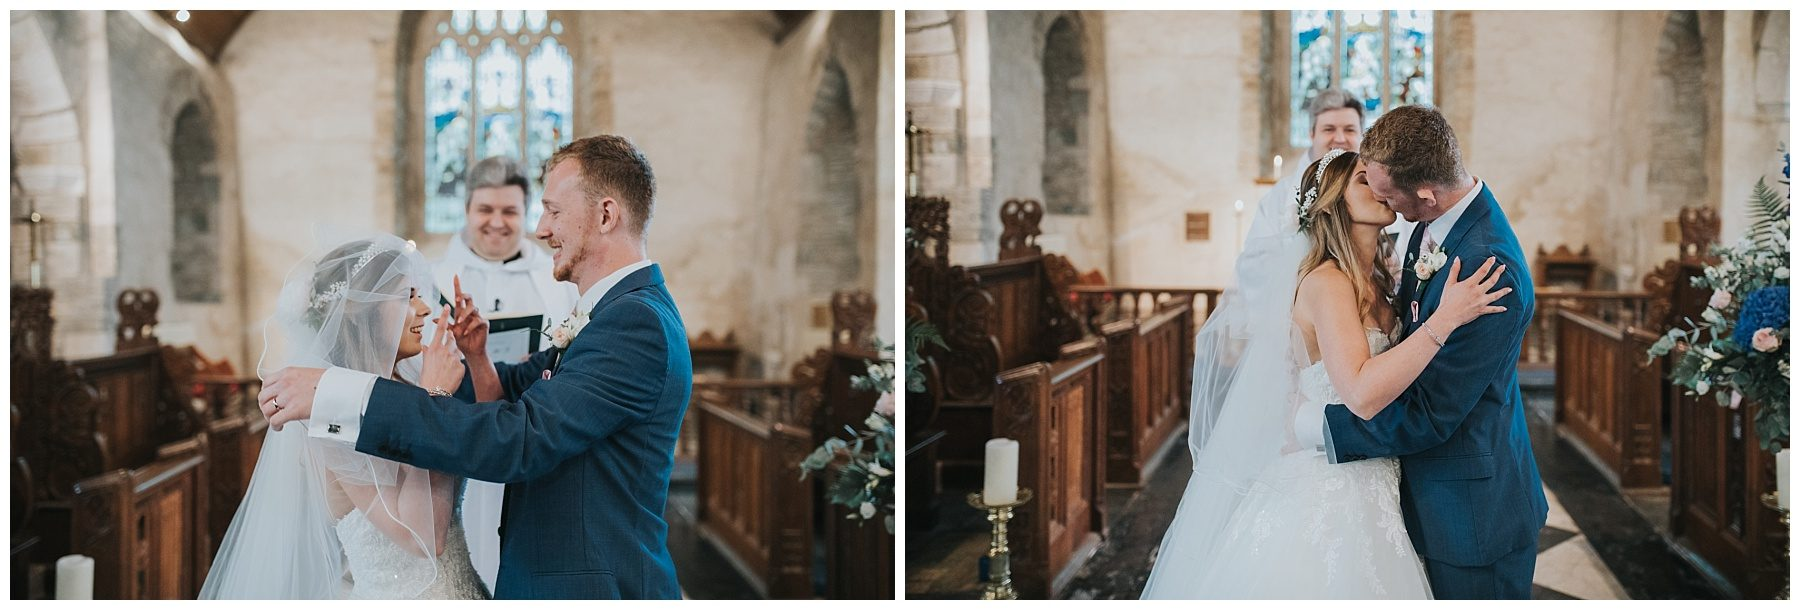 Cornwall wedding photography bride and groom first kiss